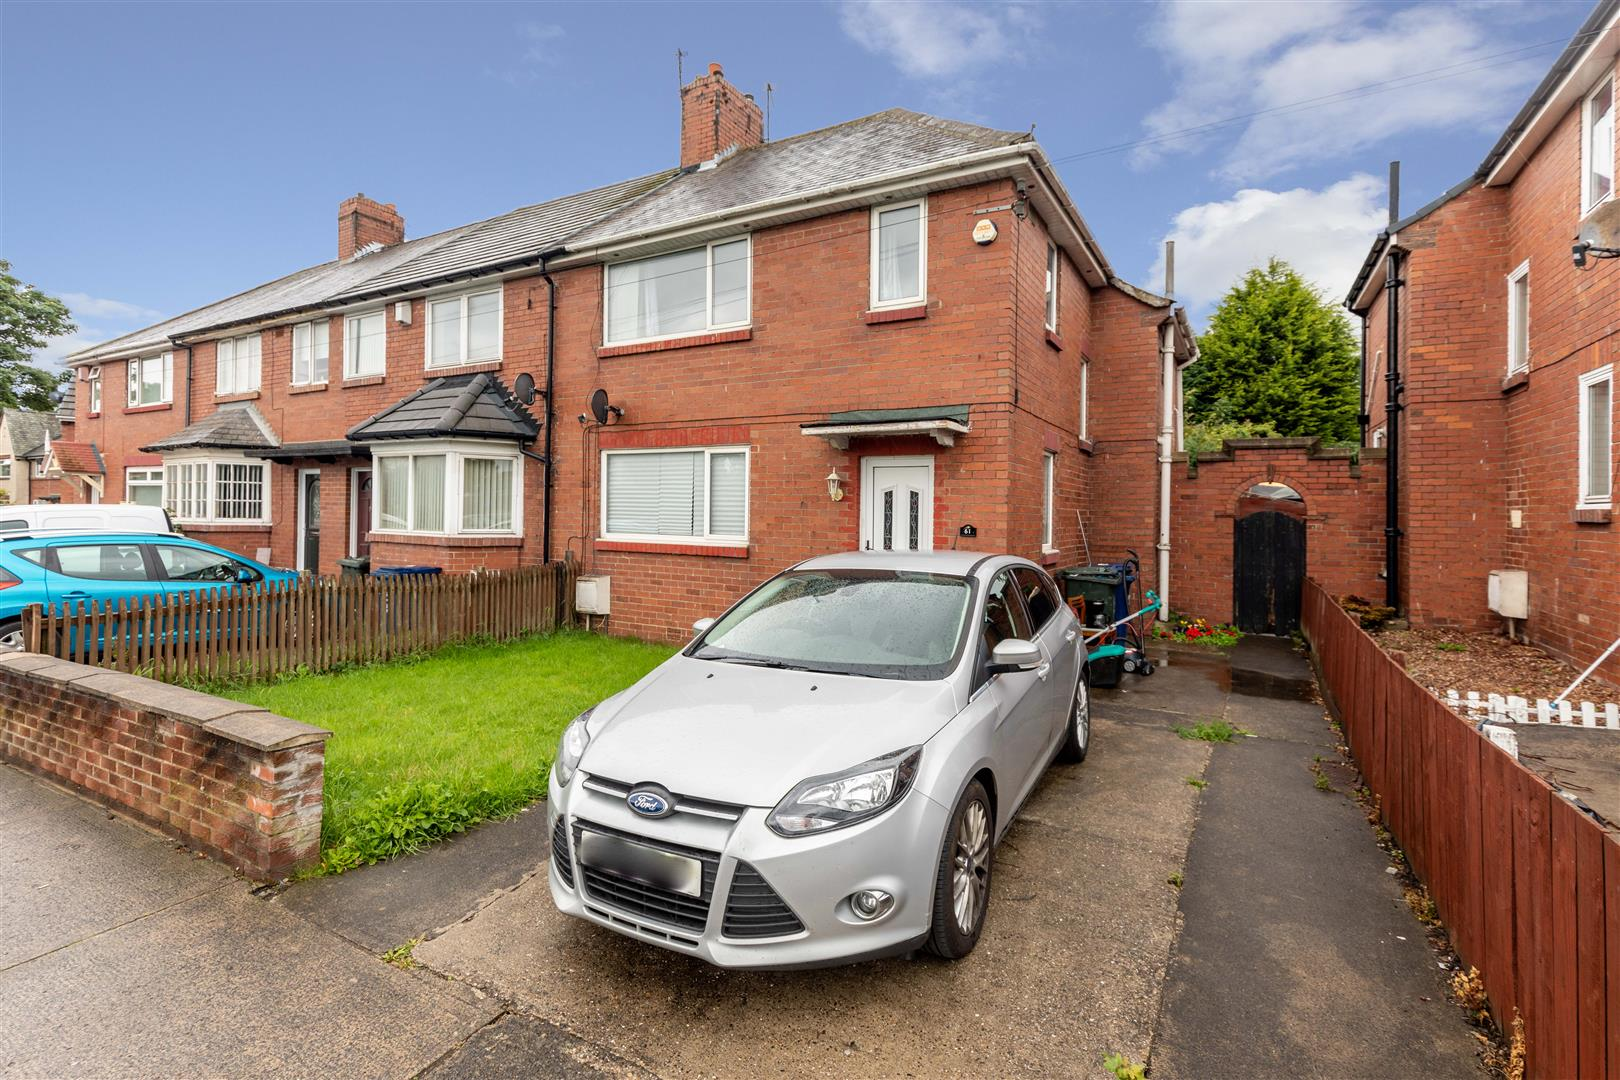 3 bed semi-detached house for sale in Newcastle Upon Tyne, NE7 7DS, NE7